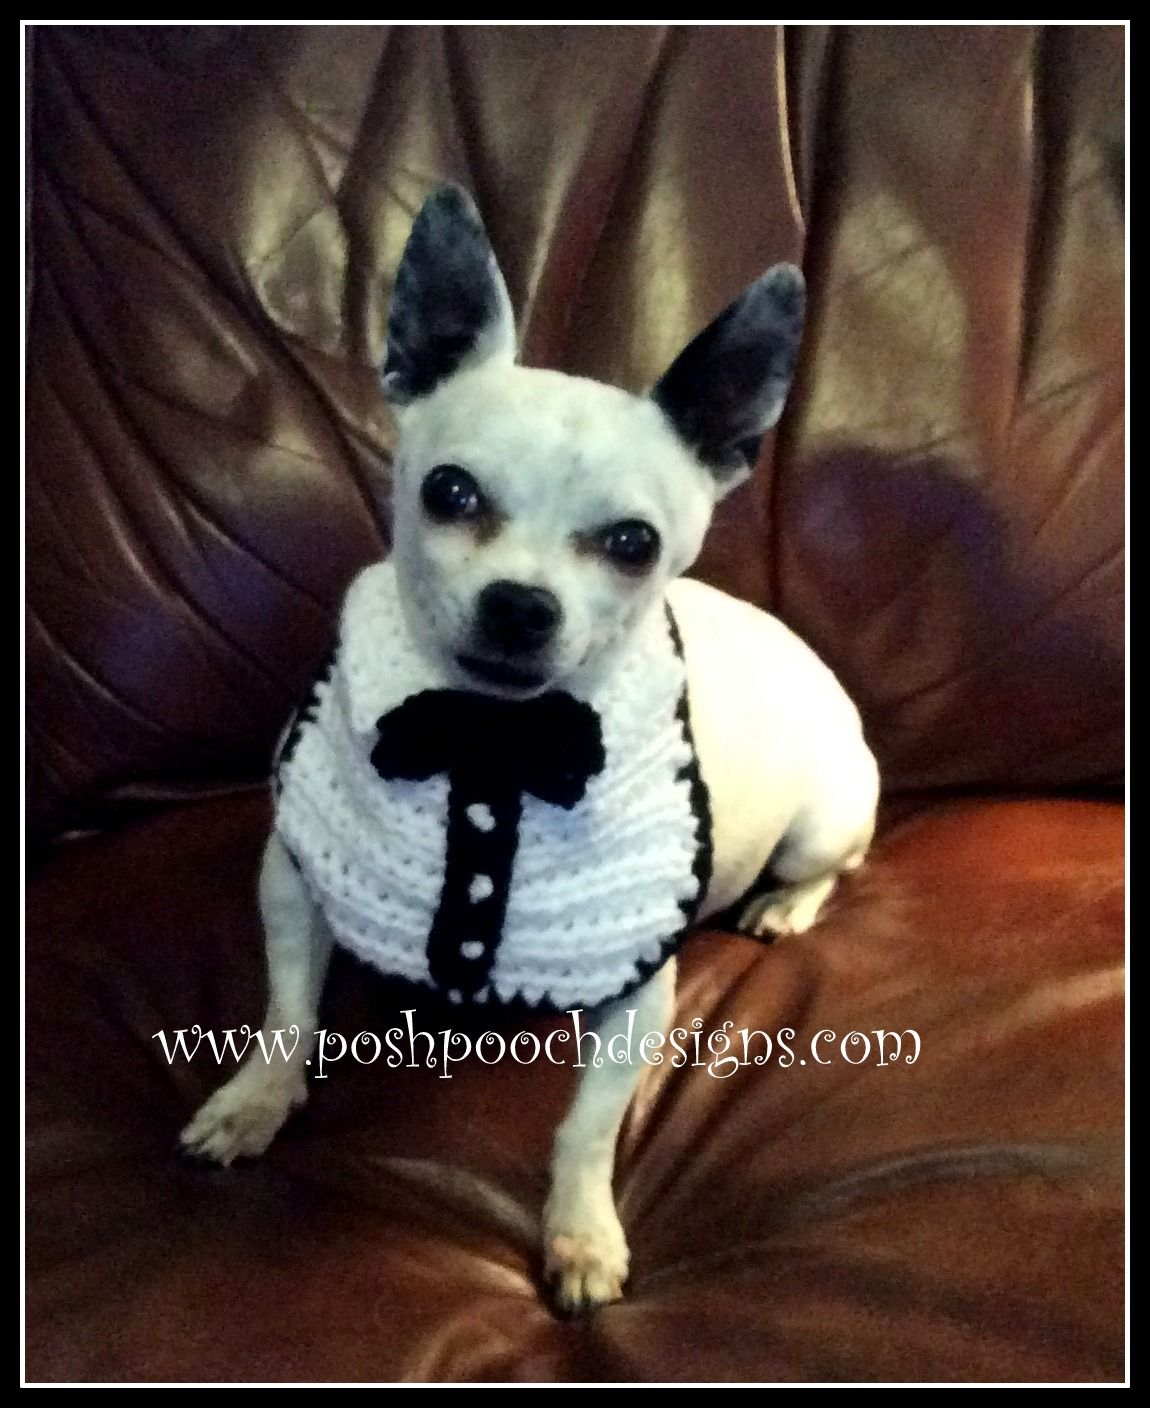 Posh Pooch Designs Dog Clothes: Tuxedo Dog Bib Crochet Pattern ...